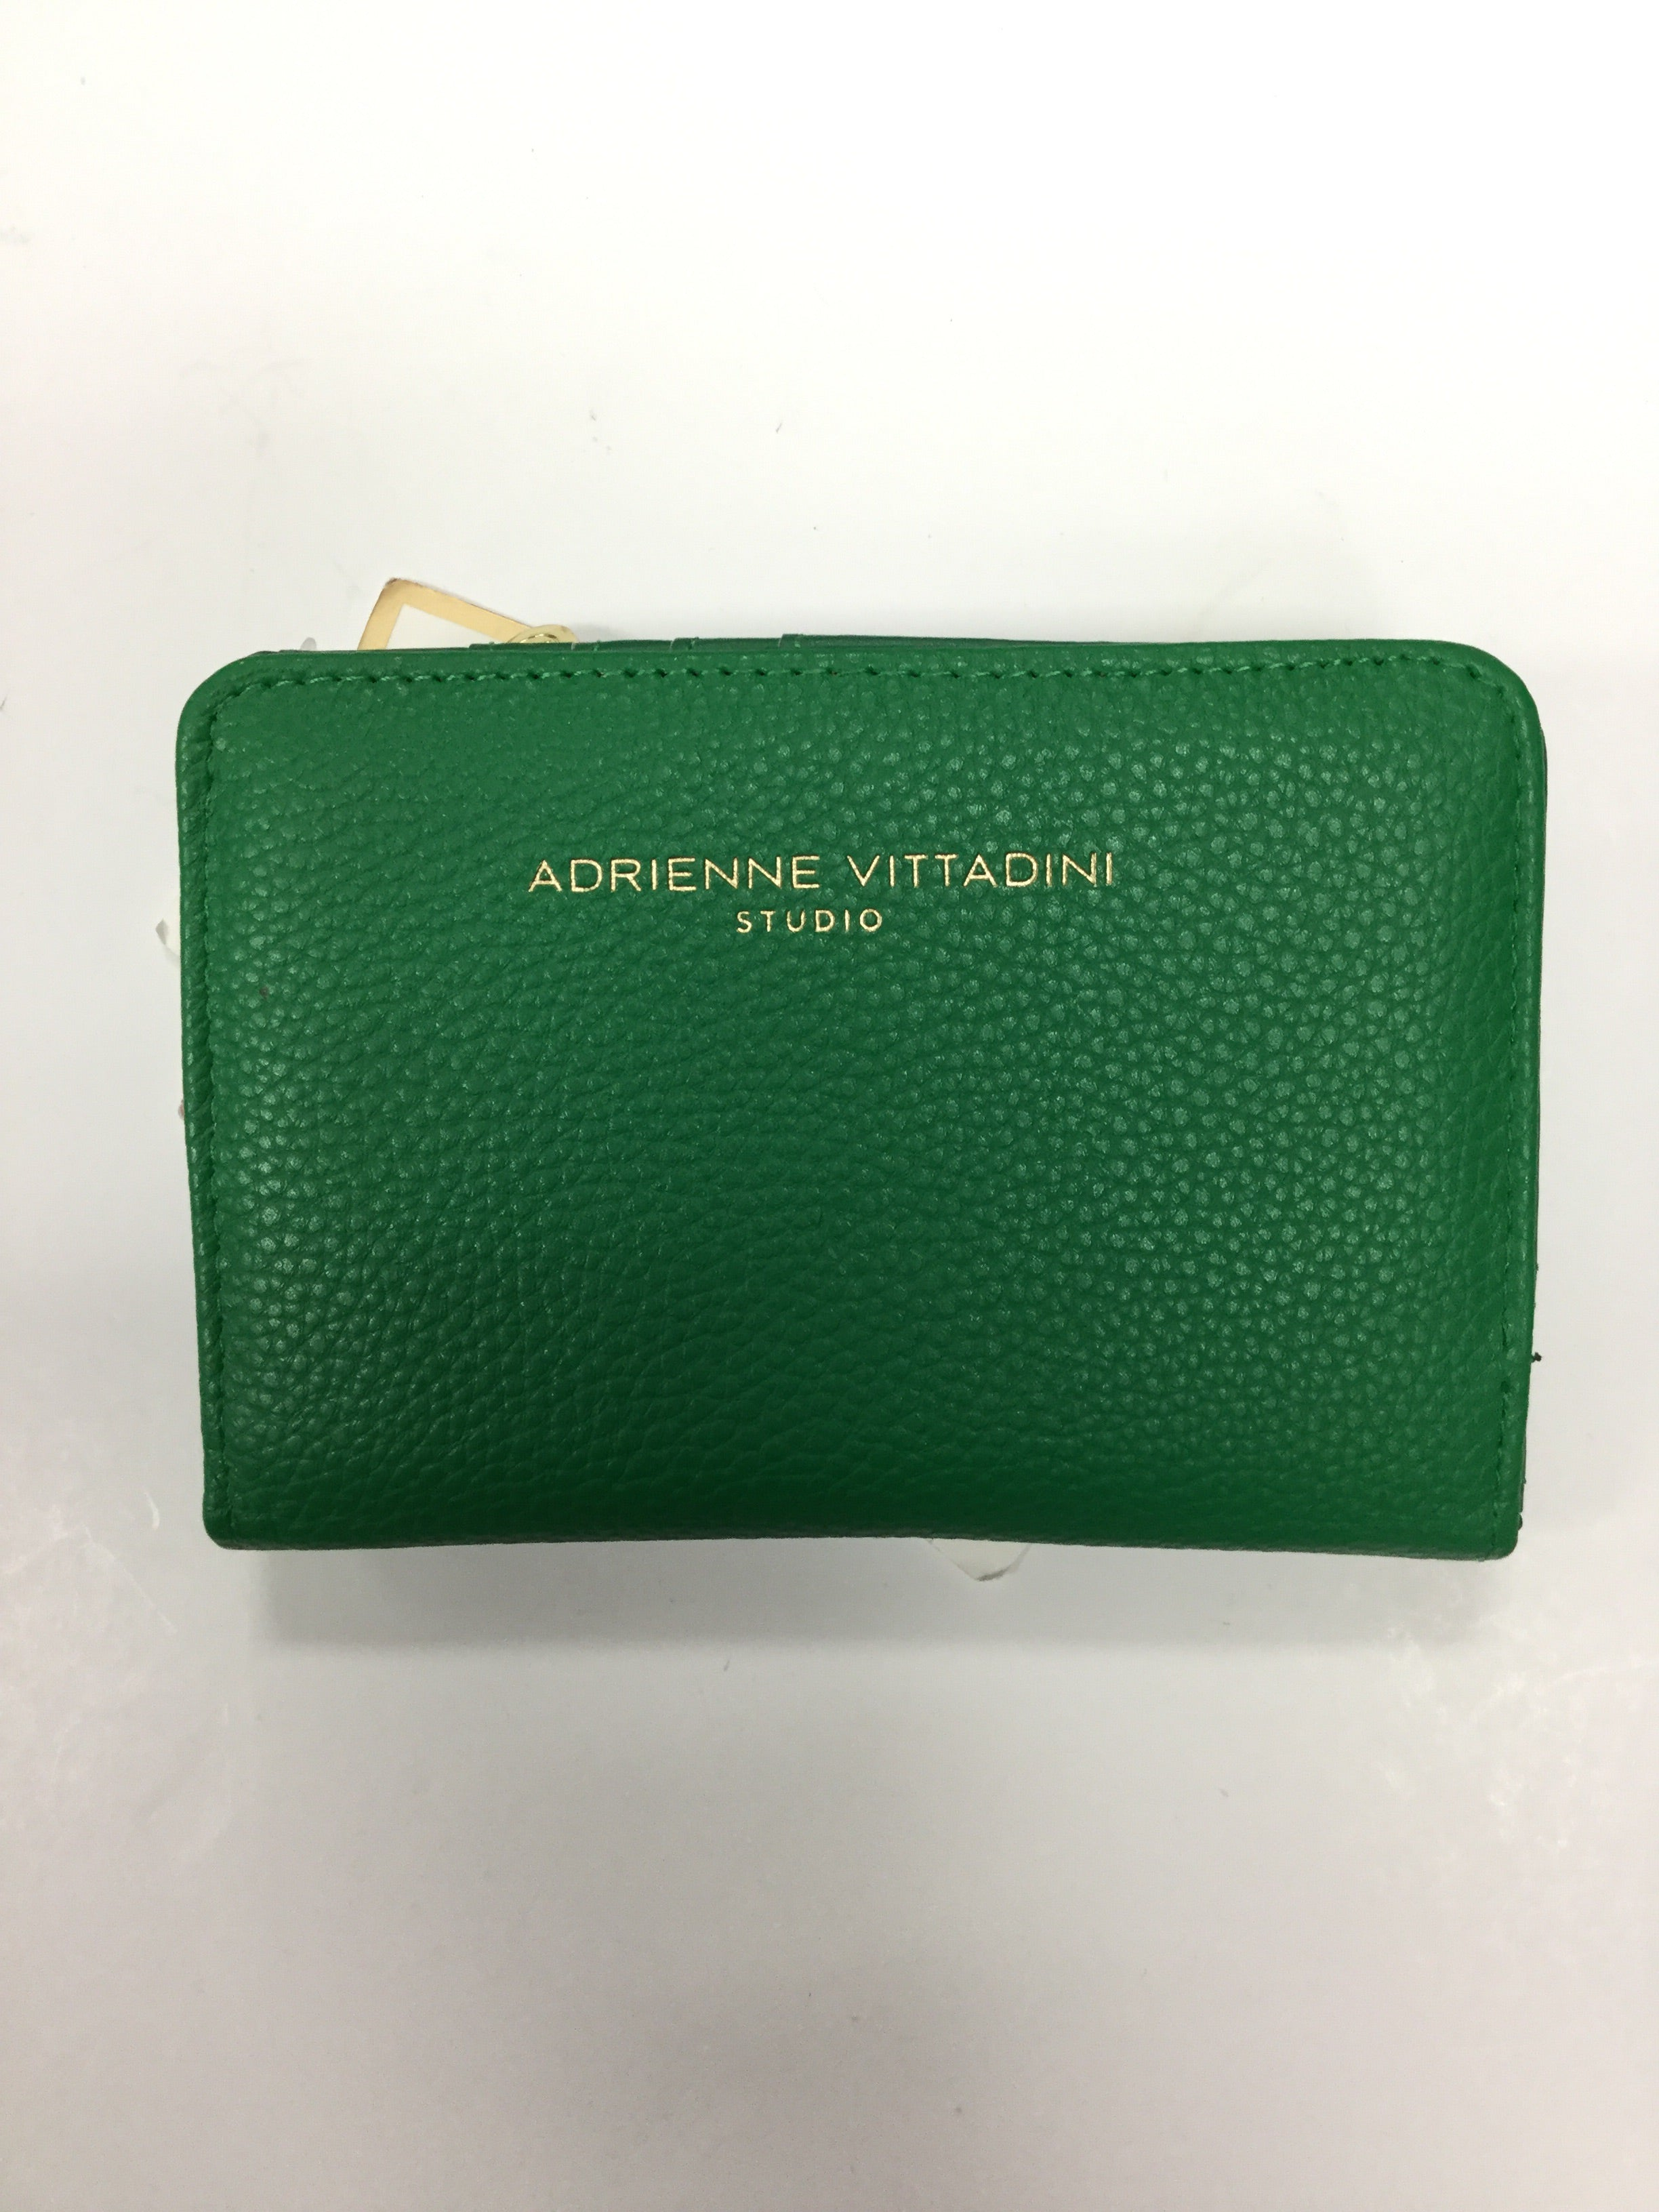 Primary Photo - BRAND: ADRIENNE VITTADINI <BR>STYLE: WALLET <BR>COLOR: KELLY GREEN <BR>SIZE: SMALL <BR>SKU: 155-15545-200679